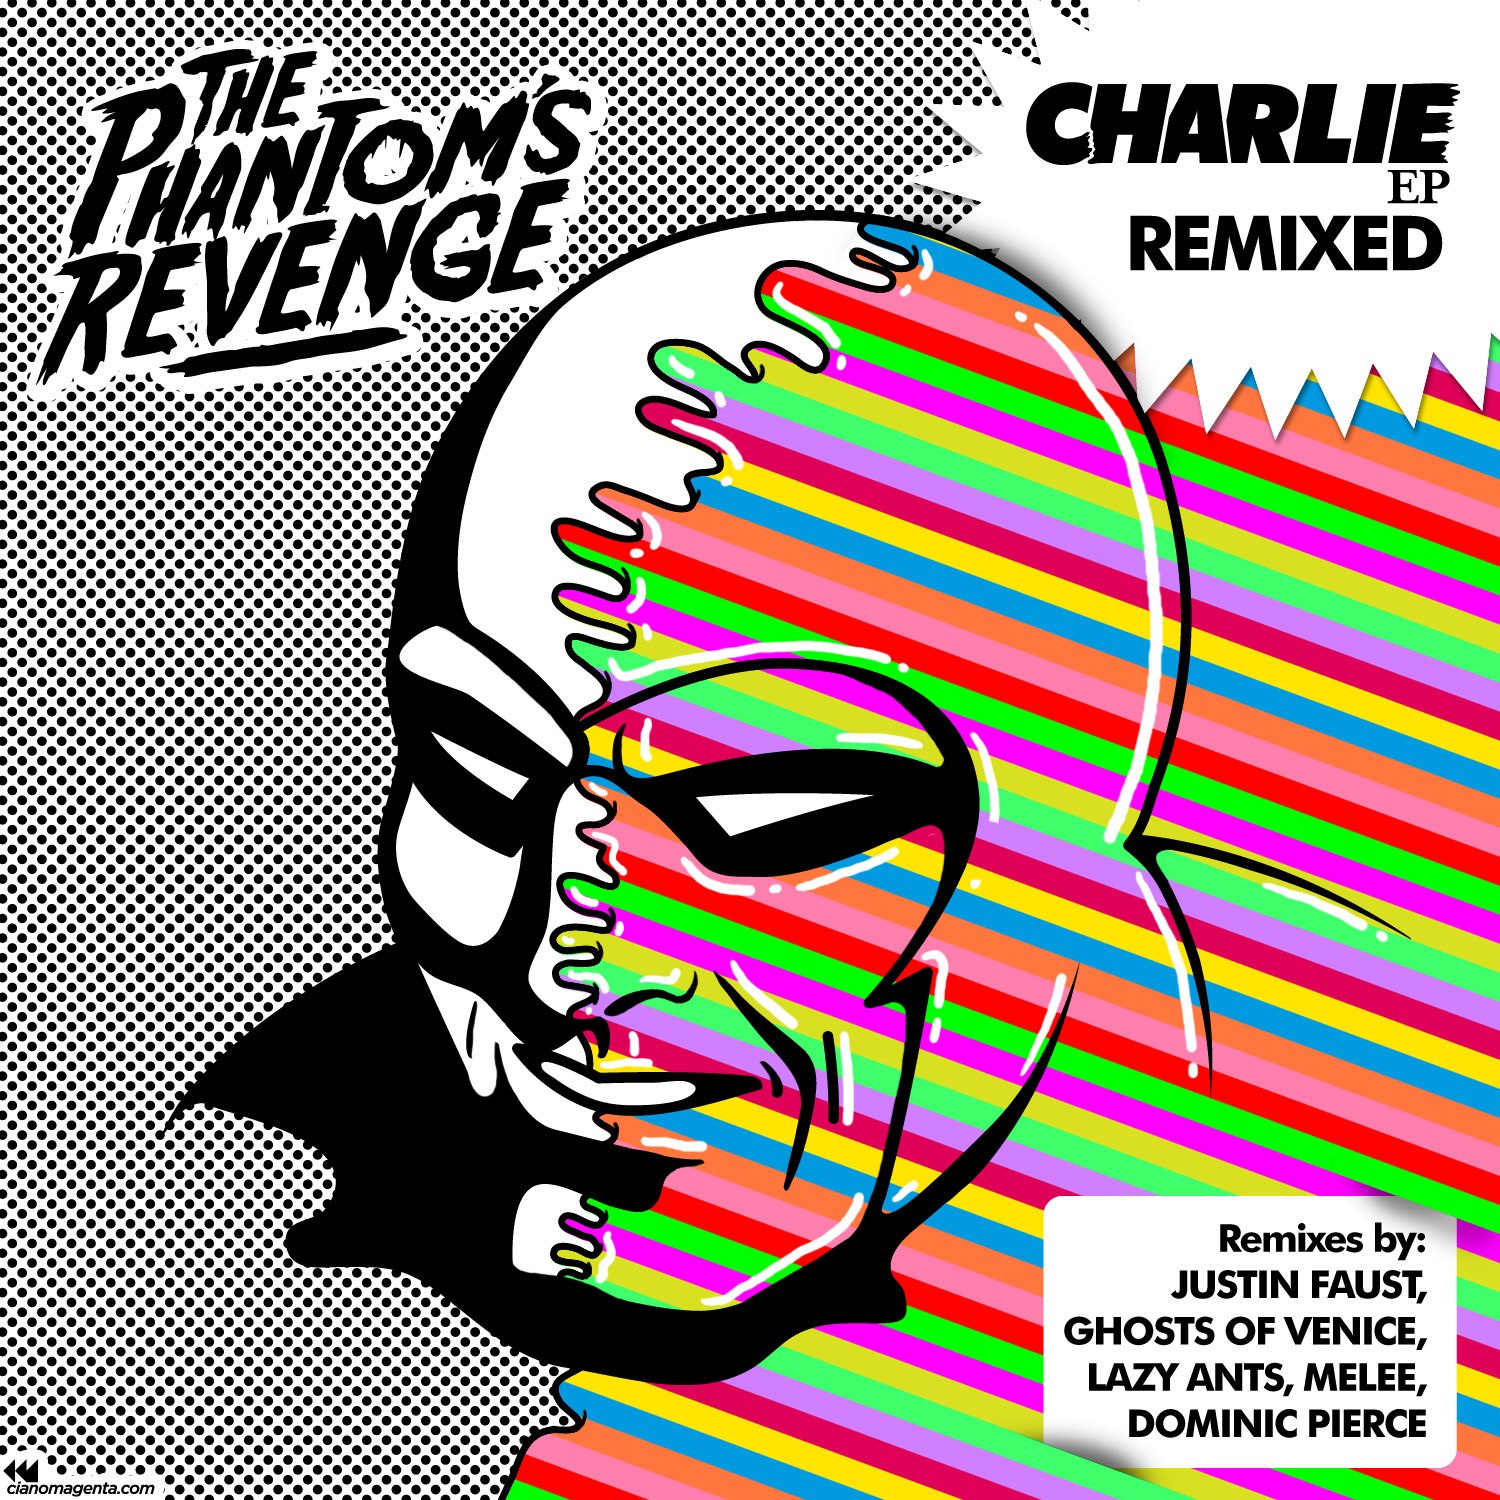 The Phantom's Revenge - Charlie ep Remixed